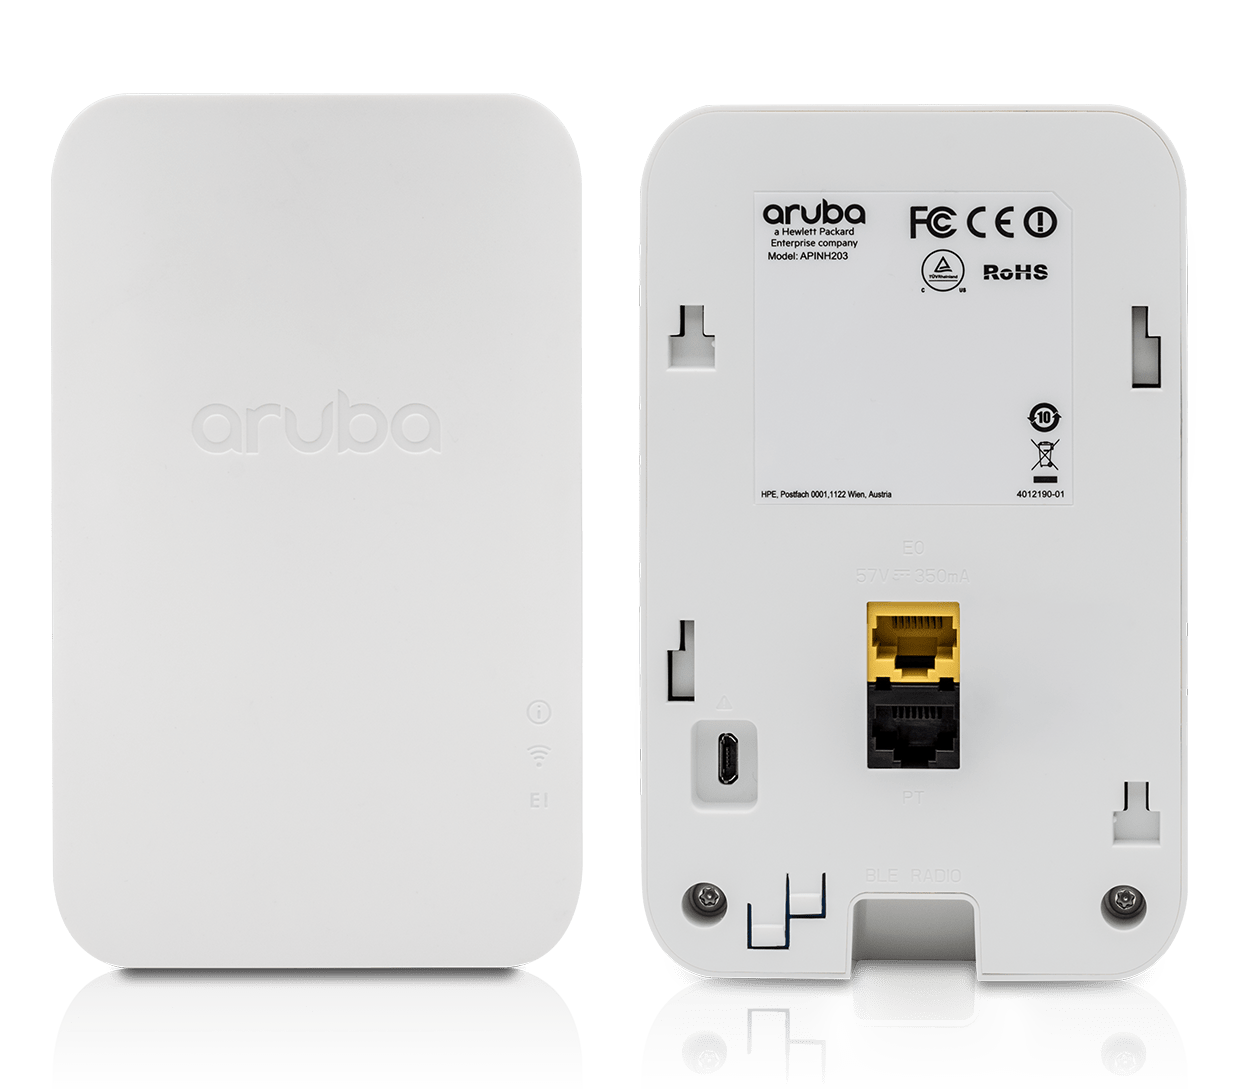 Details and specifications for the Aruba 203H Series APs